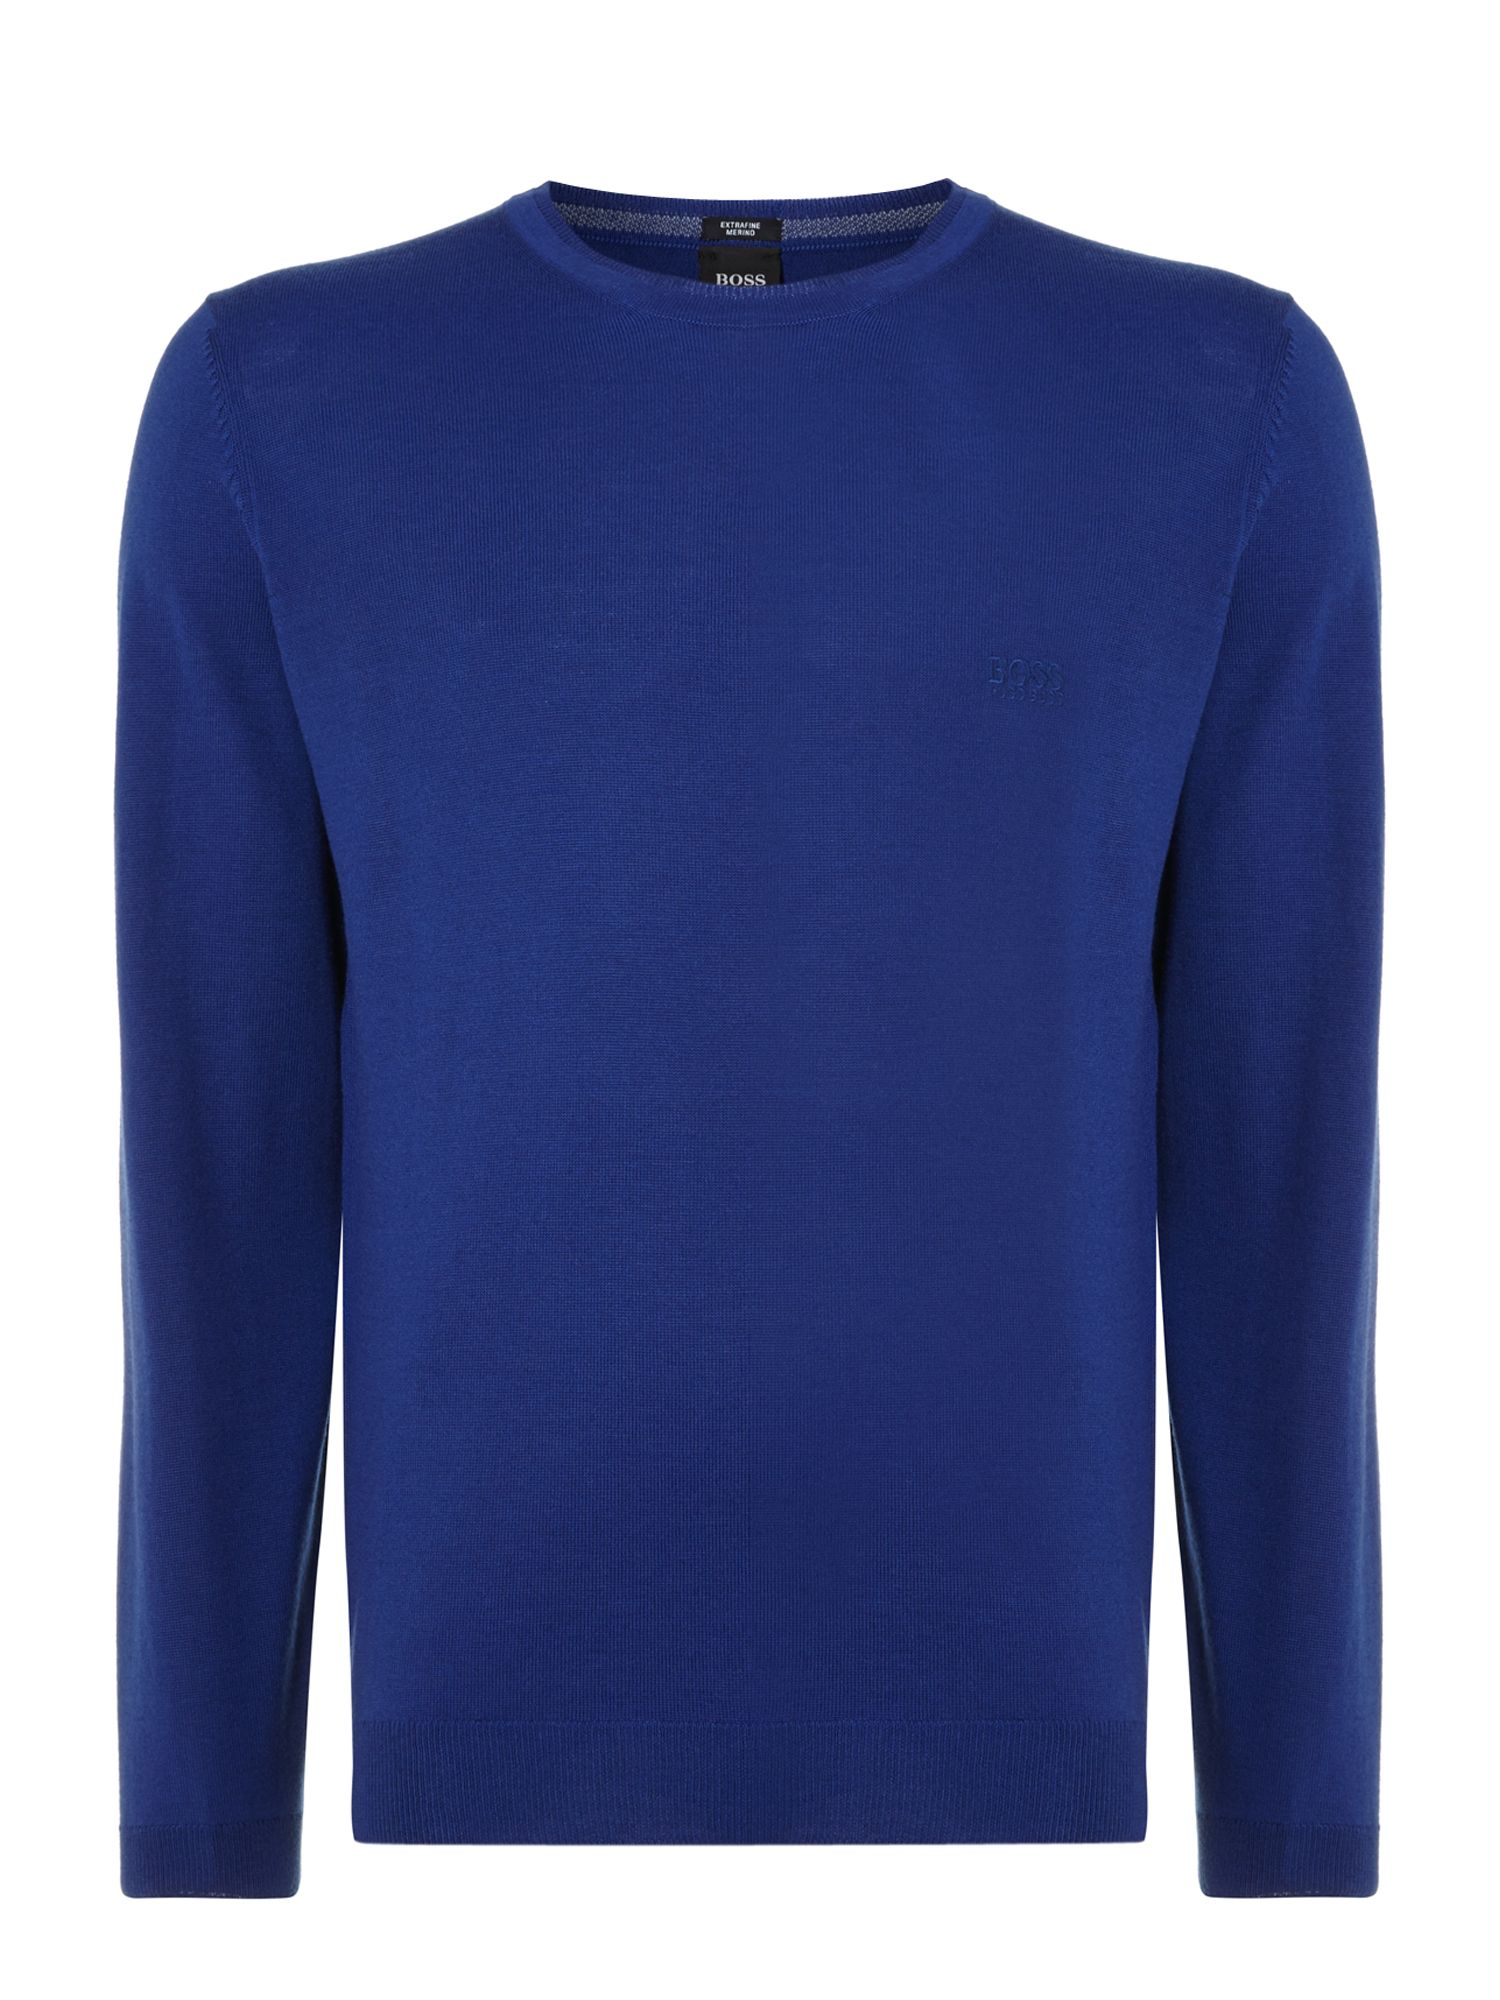 Merino crew knitted jumper